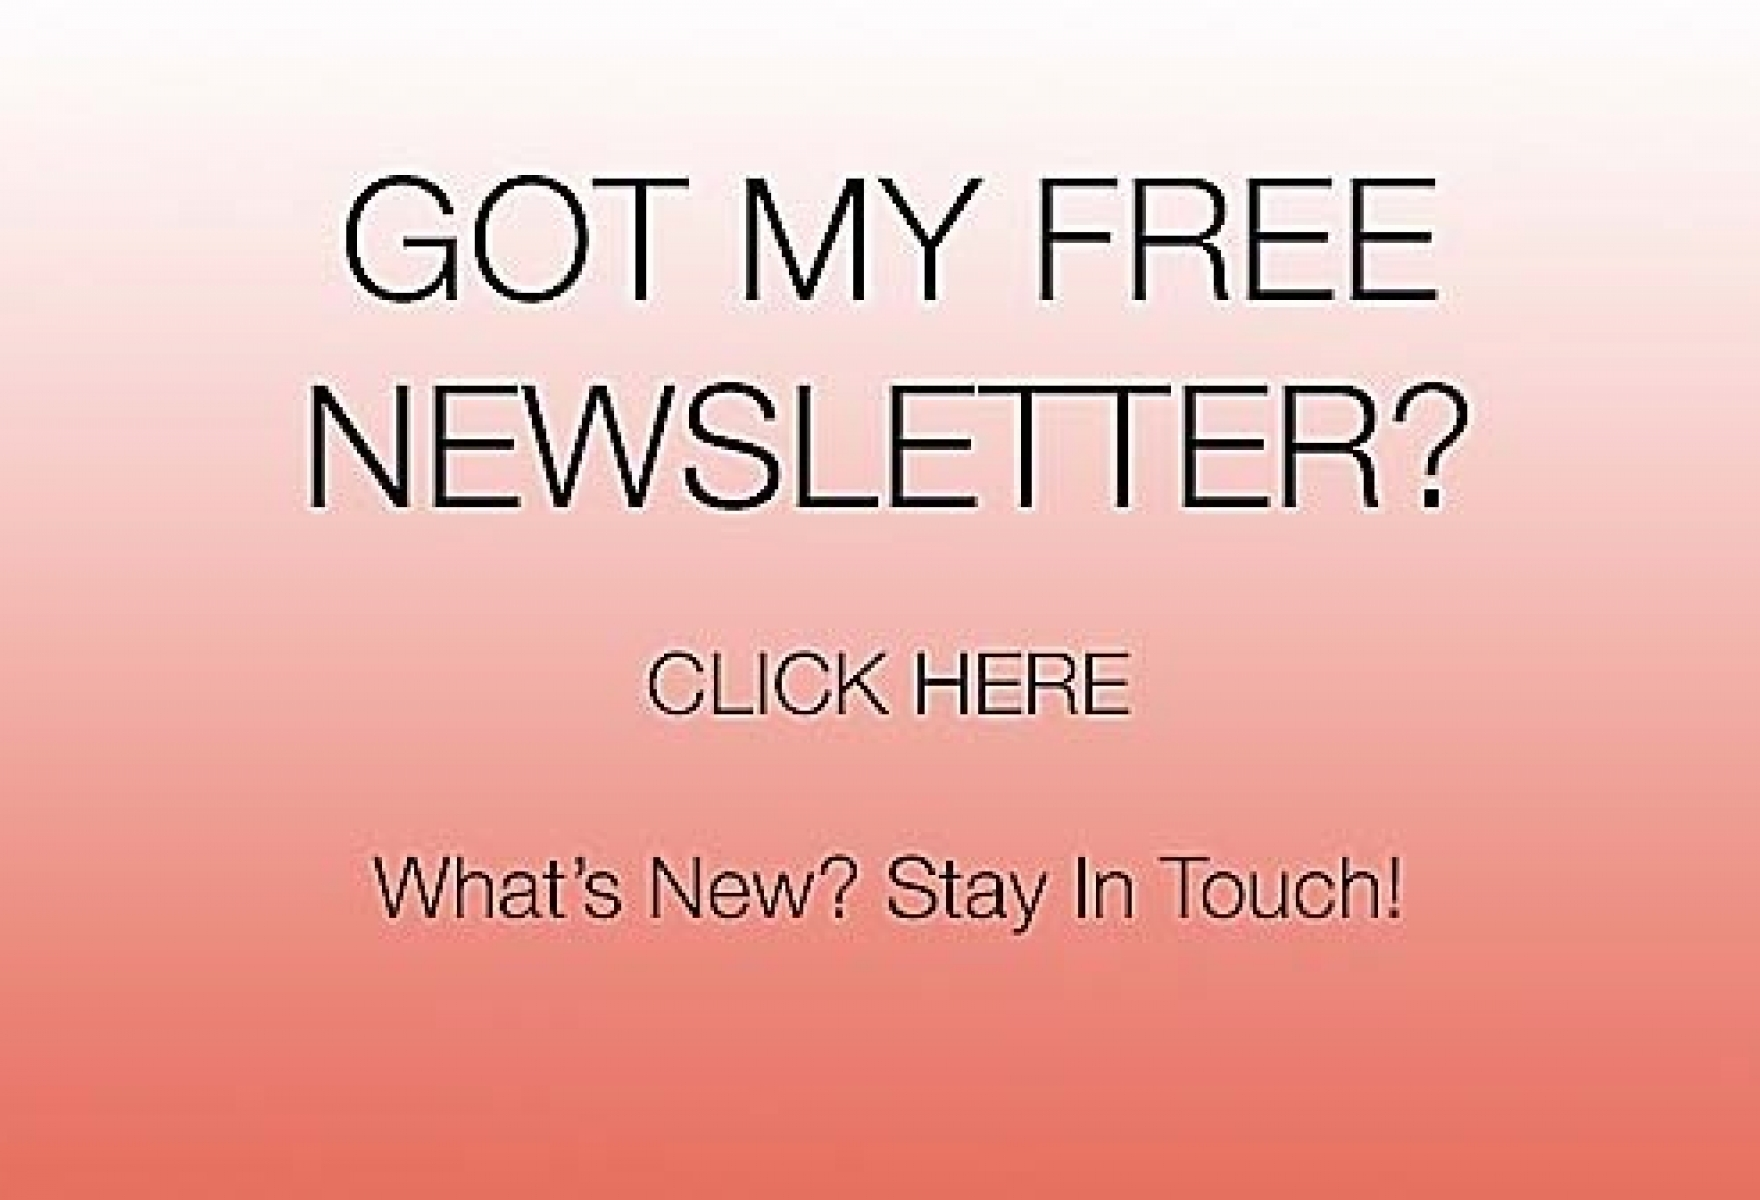 NEWSLETTER PROMOTIONAL MESSAGE